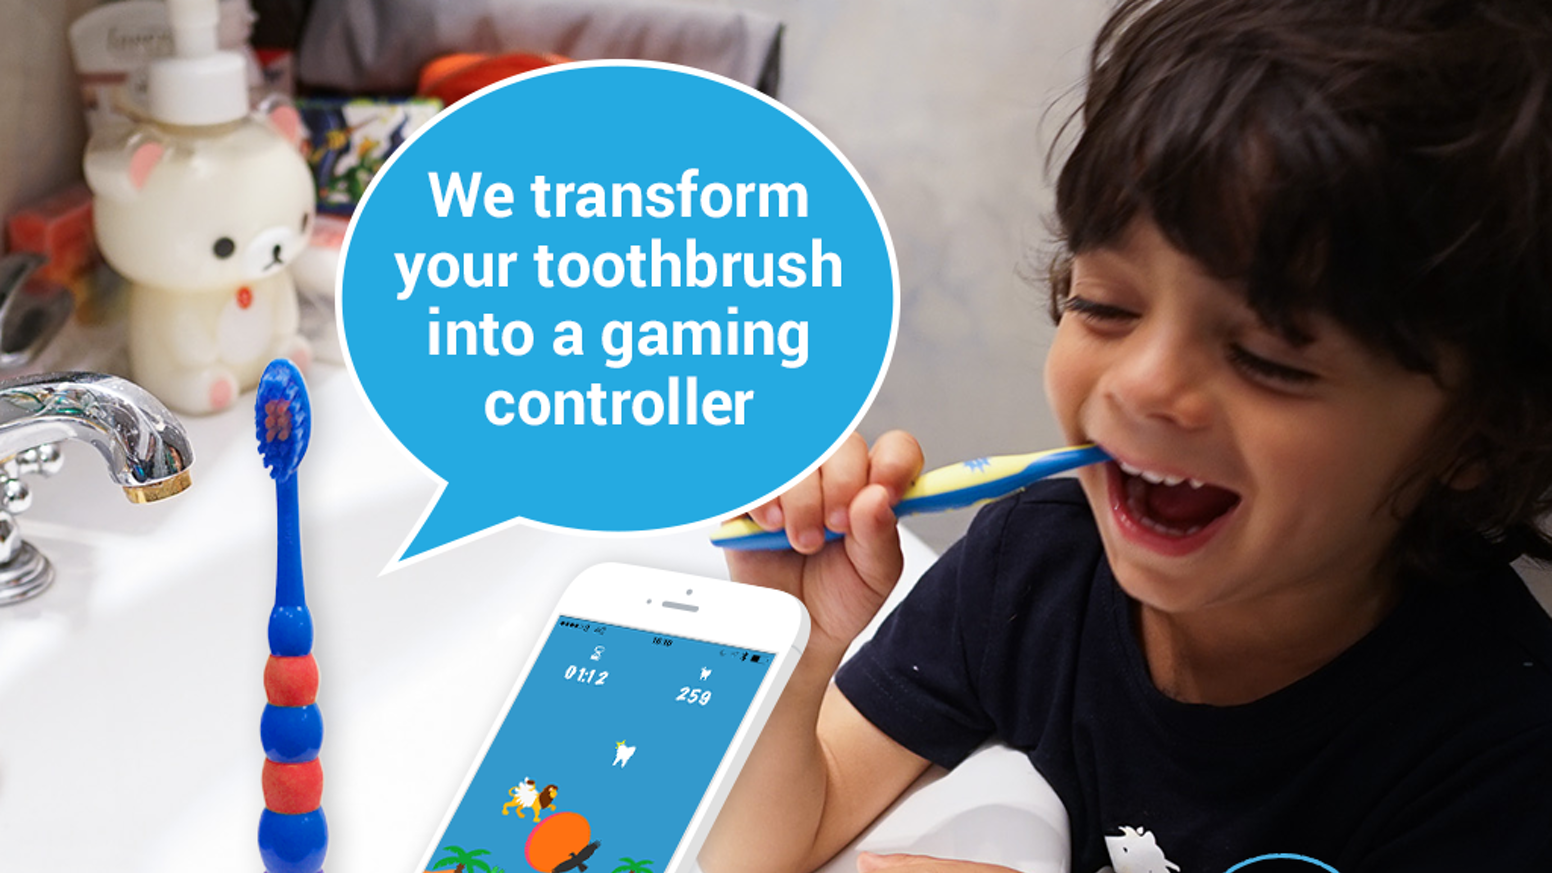 We transform toothbrushes into gaming controllers - so kids and young-at-hearts can play fun & interactive mobile games while brushing.